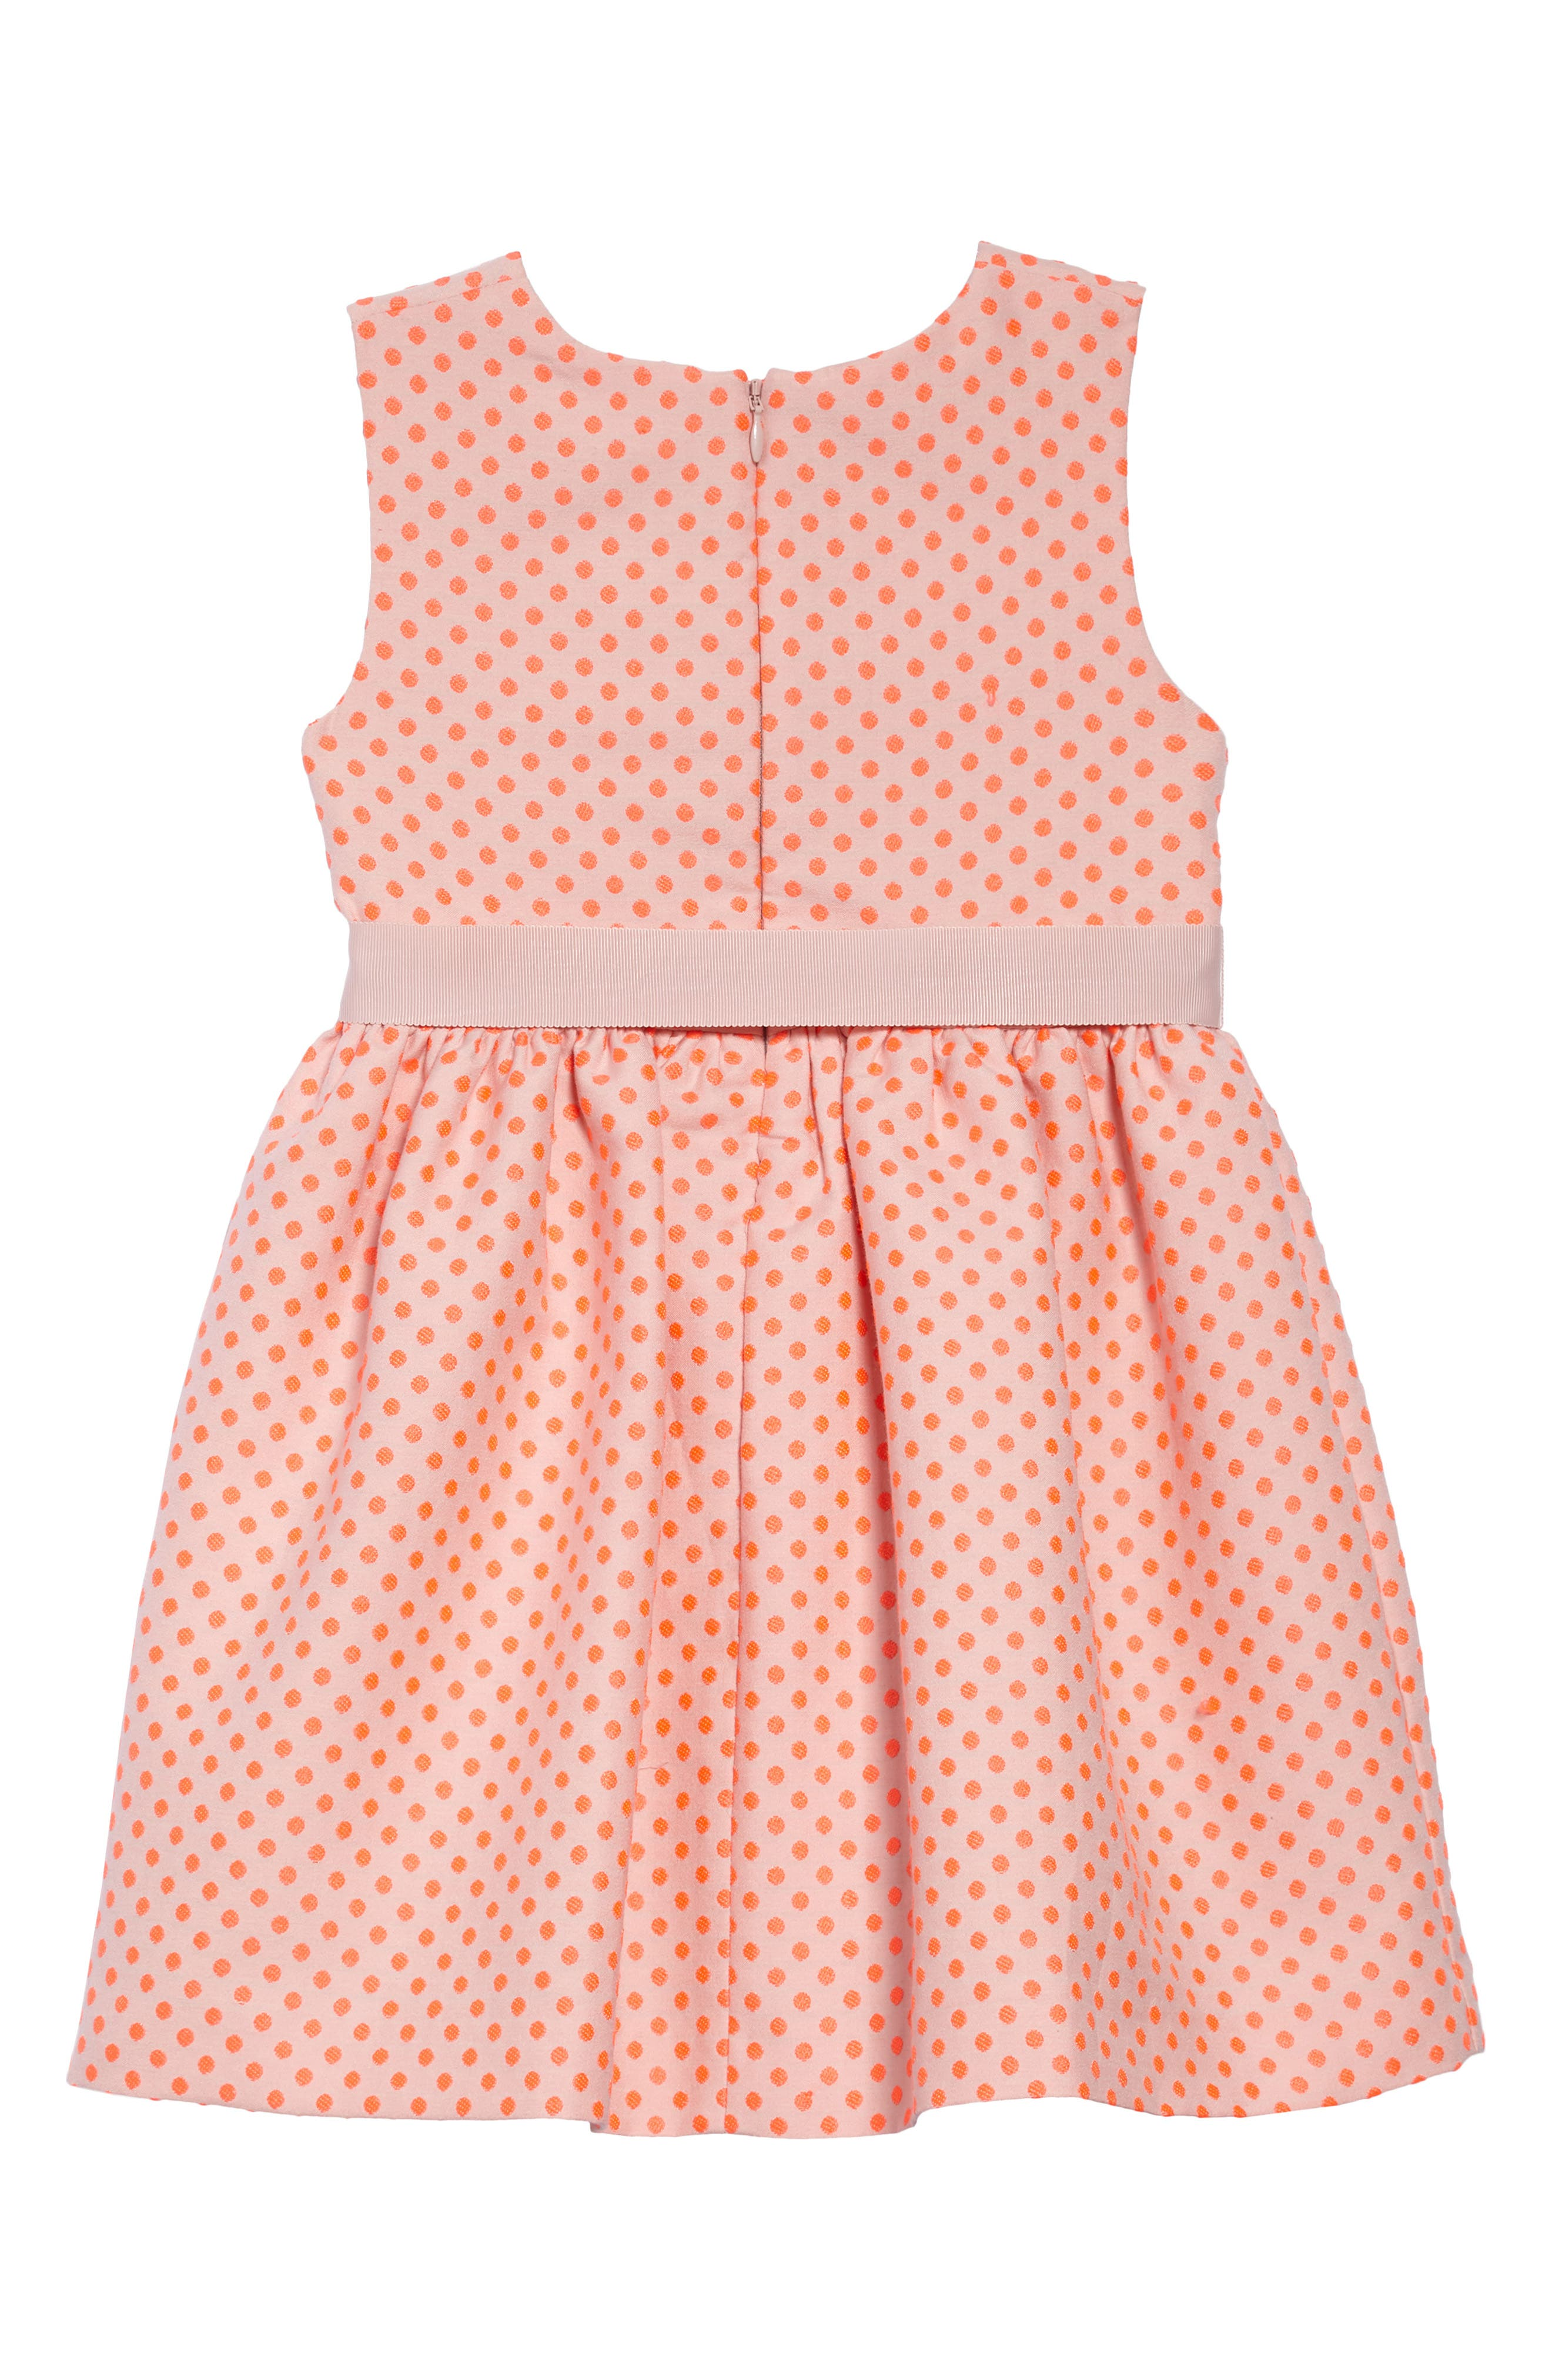 Dot Sleeveless Dress,                             Alternate thumbnail 2, color,                             Pnkbright Flamingo Pink Spot